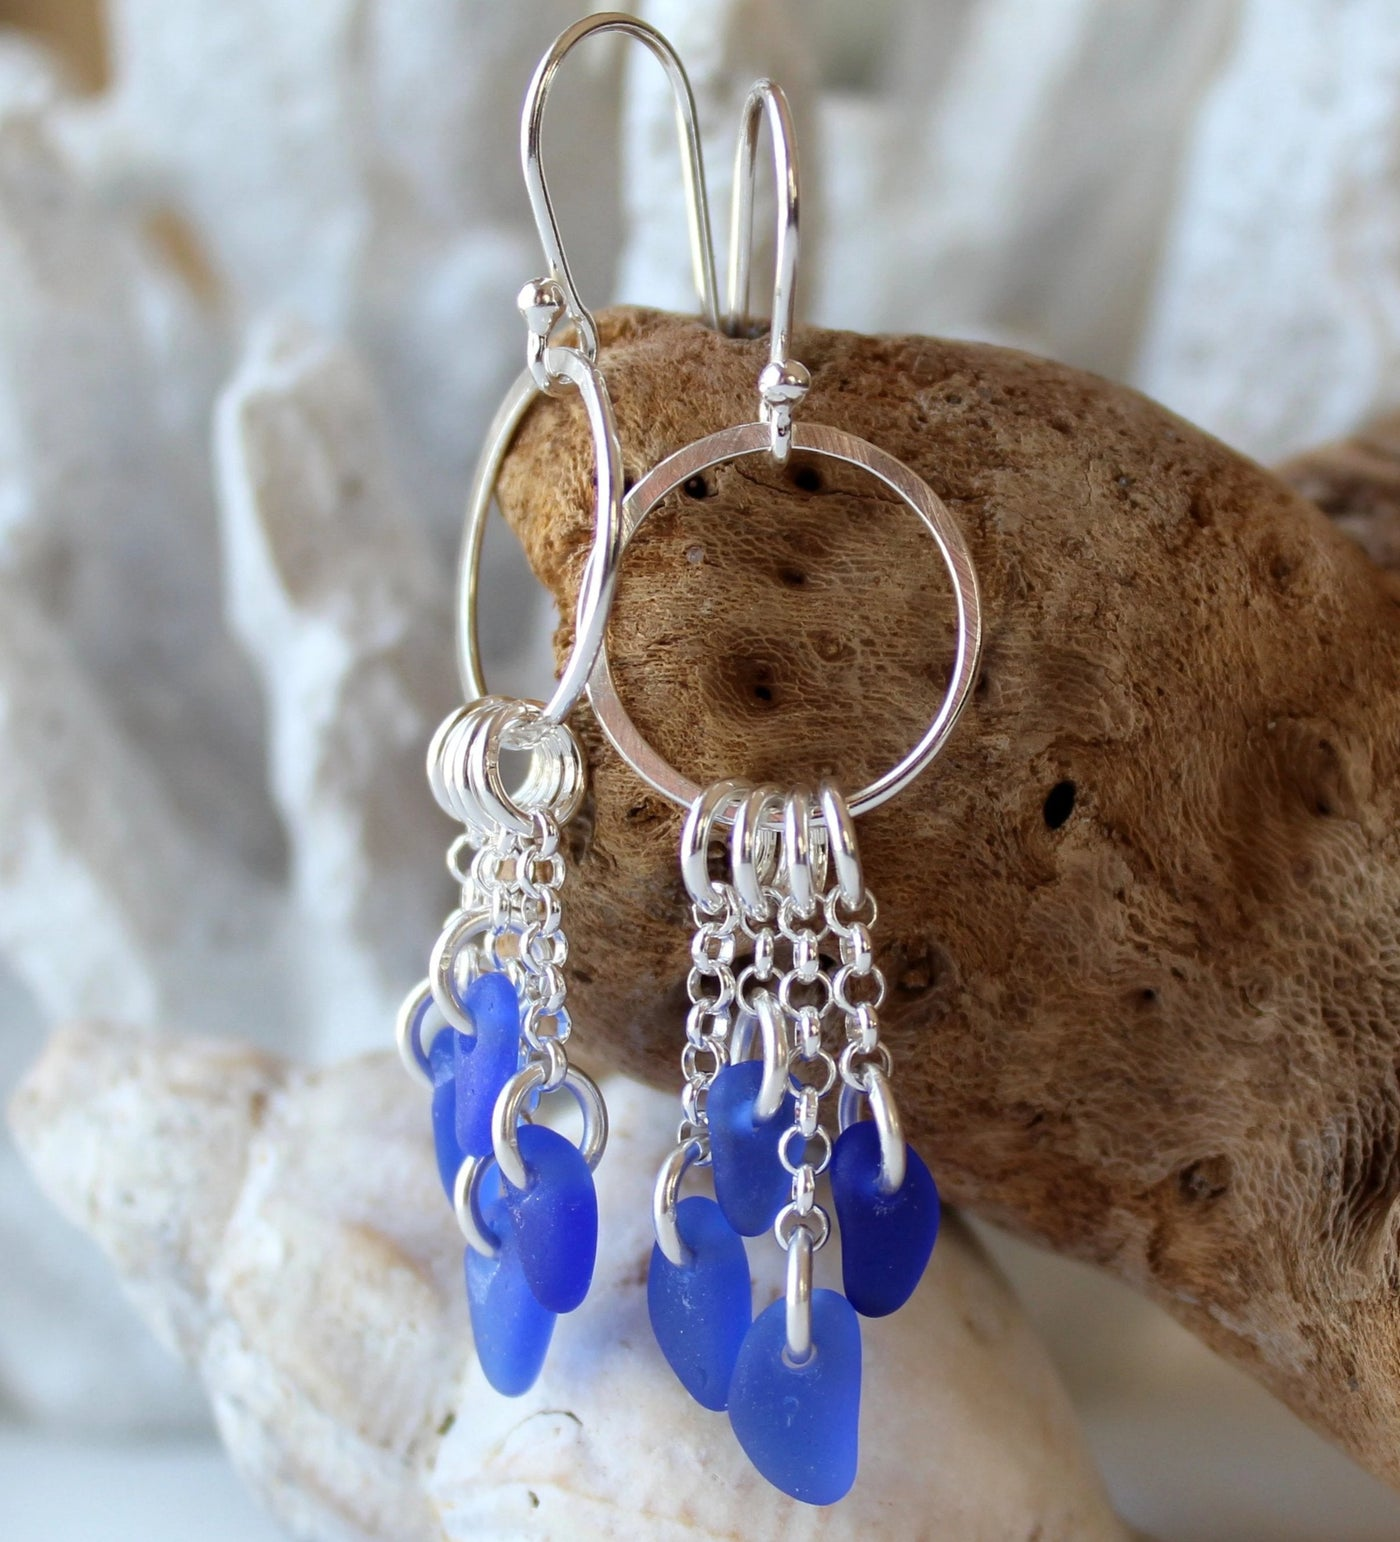 Sea glass earrings, cobalt blue earrings, sea glass jewelry, gift for wife, beachy earrings, seaglass earrings, halifax,  boho earrings